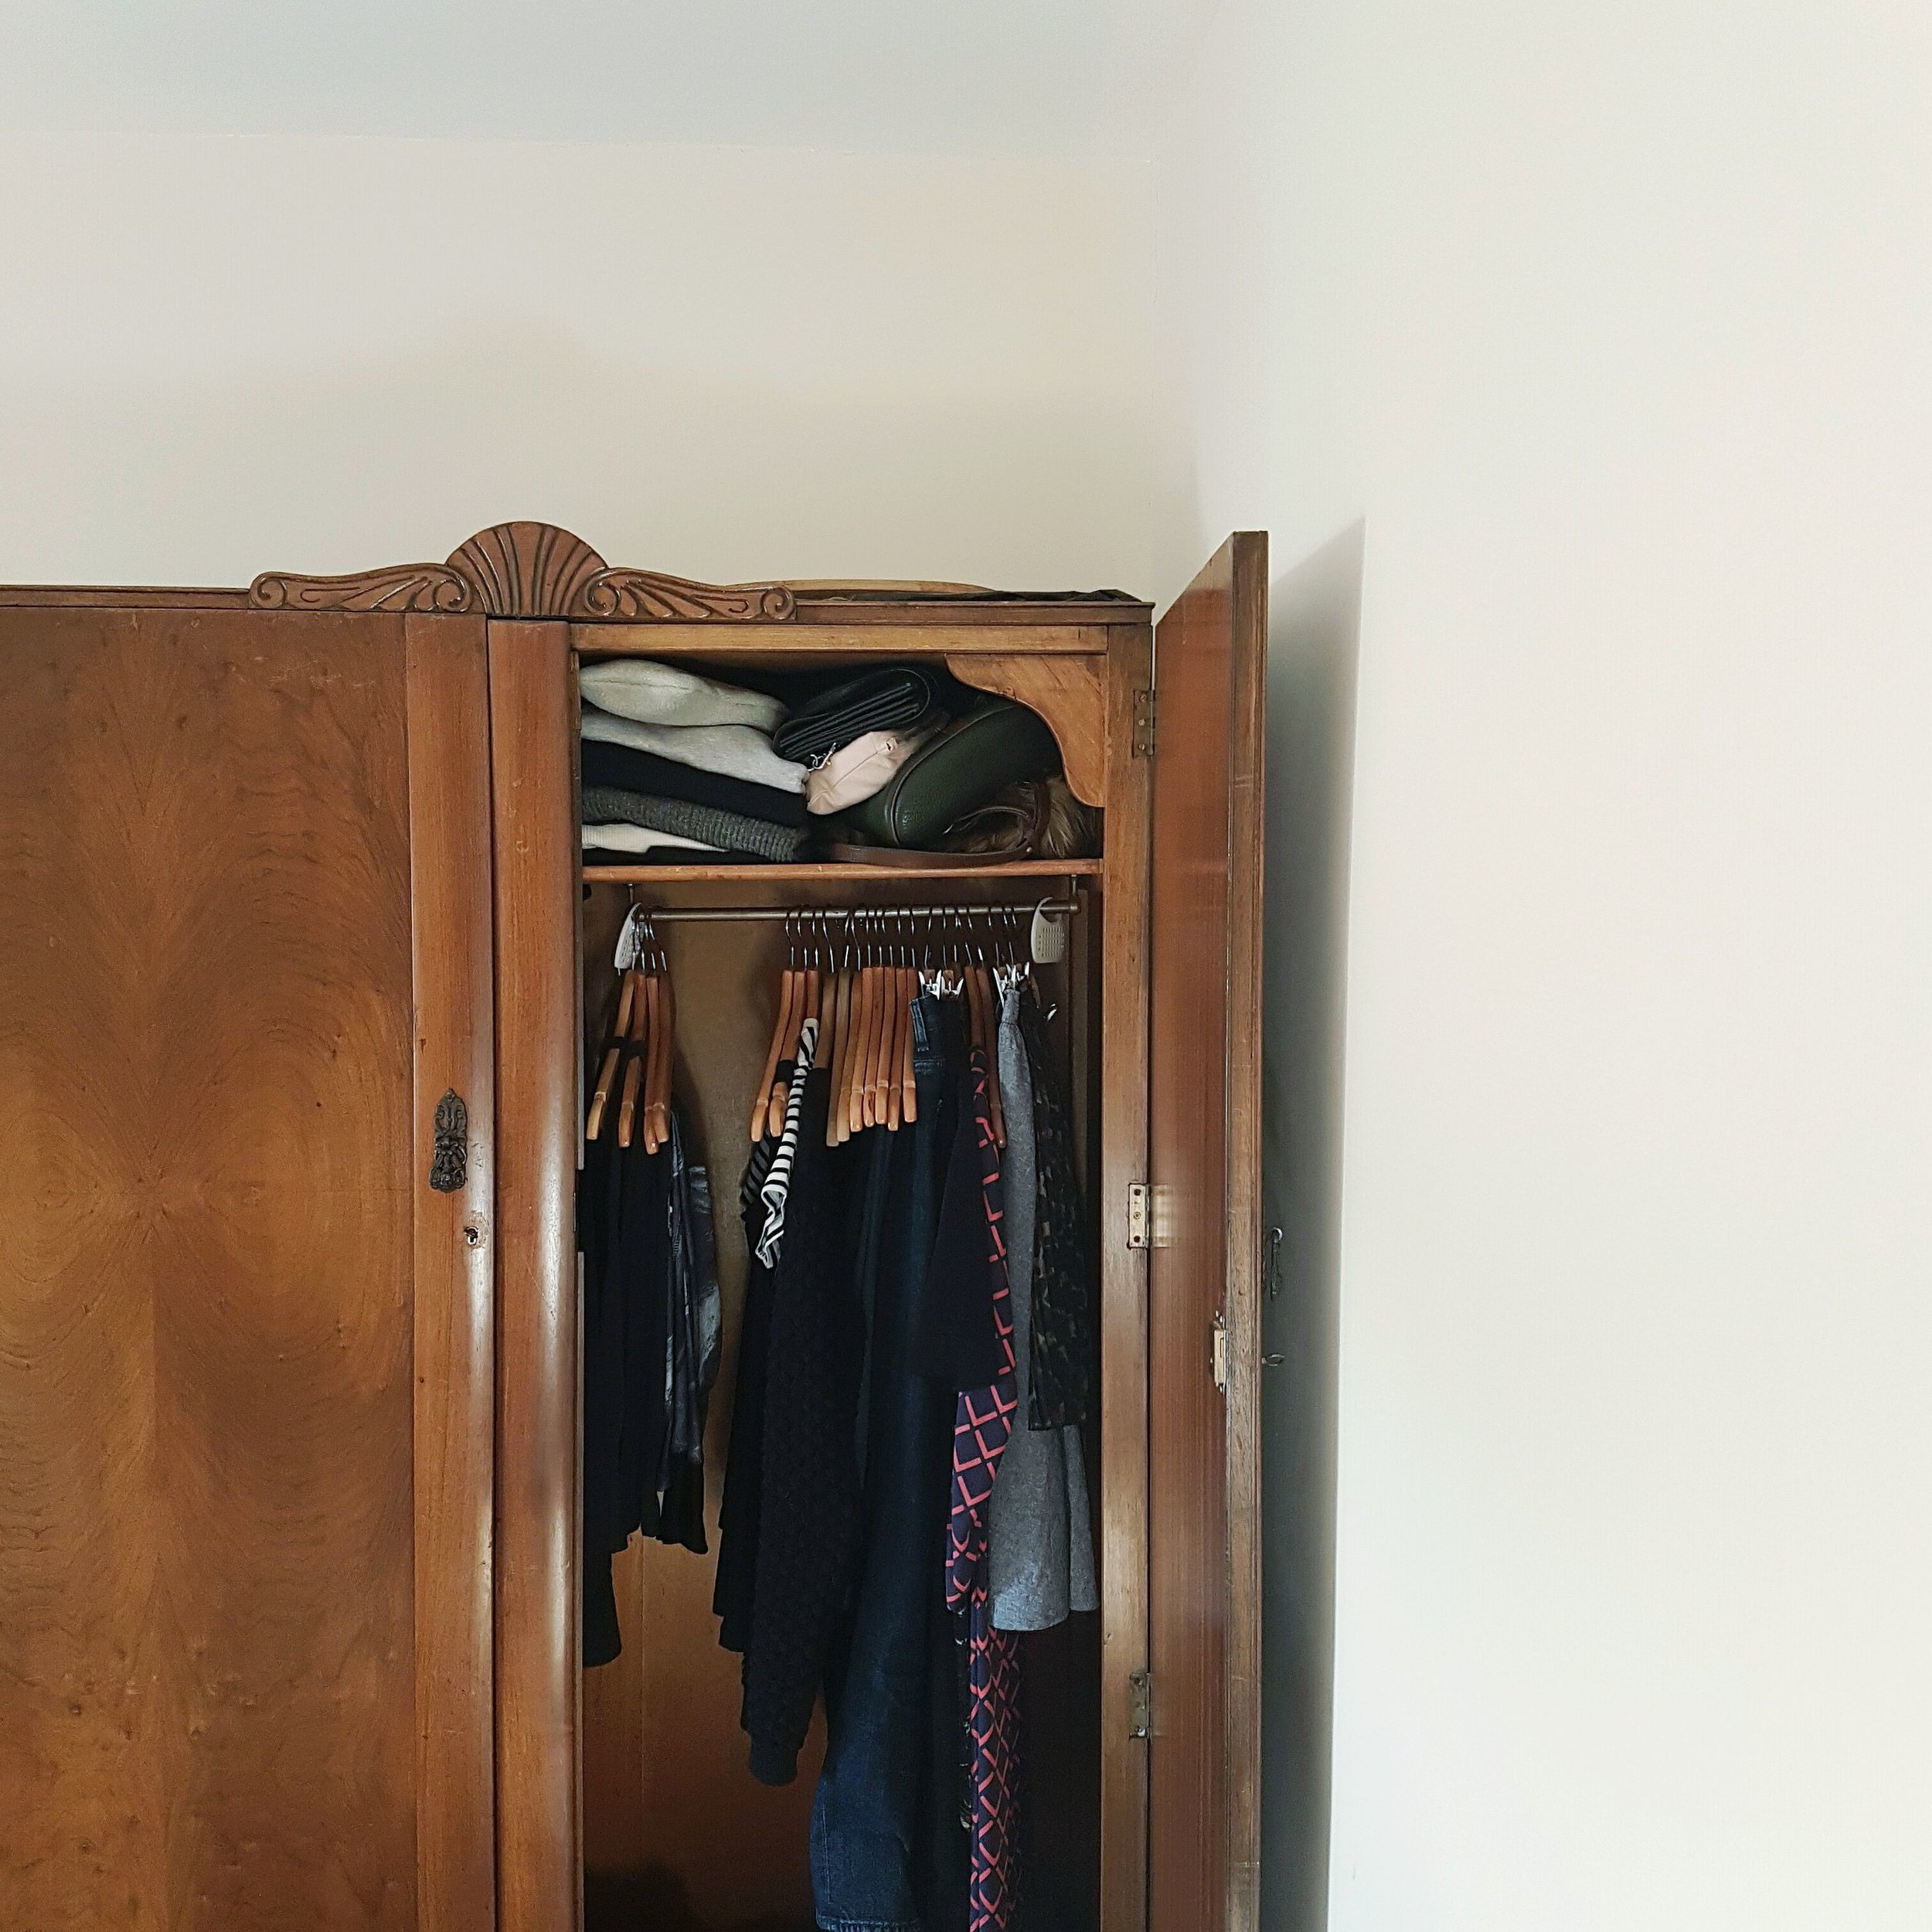 Having a small capsule wardrobe allows me to share this wardrobe with my boyfriend!